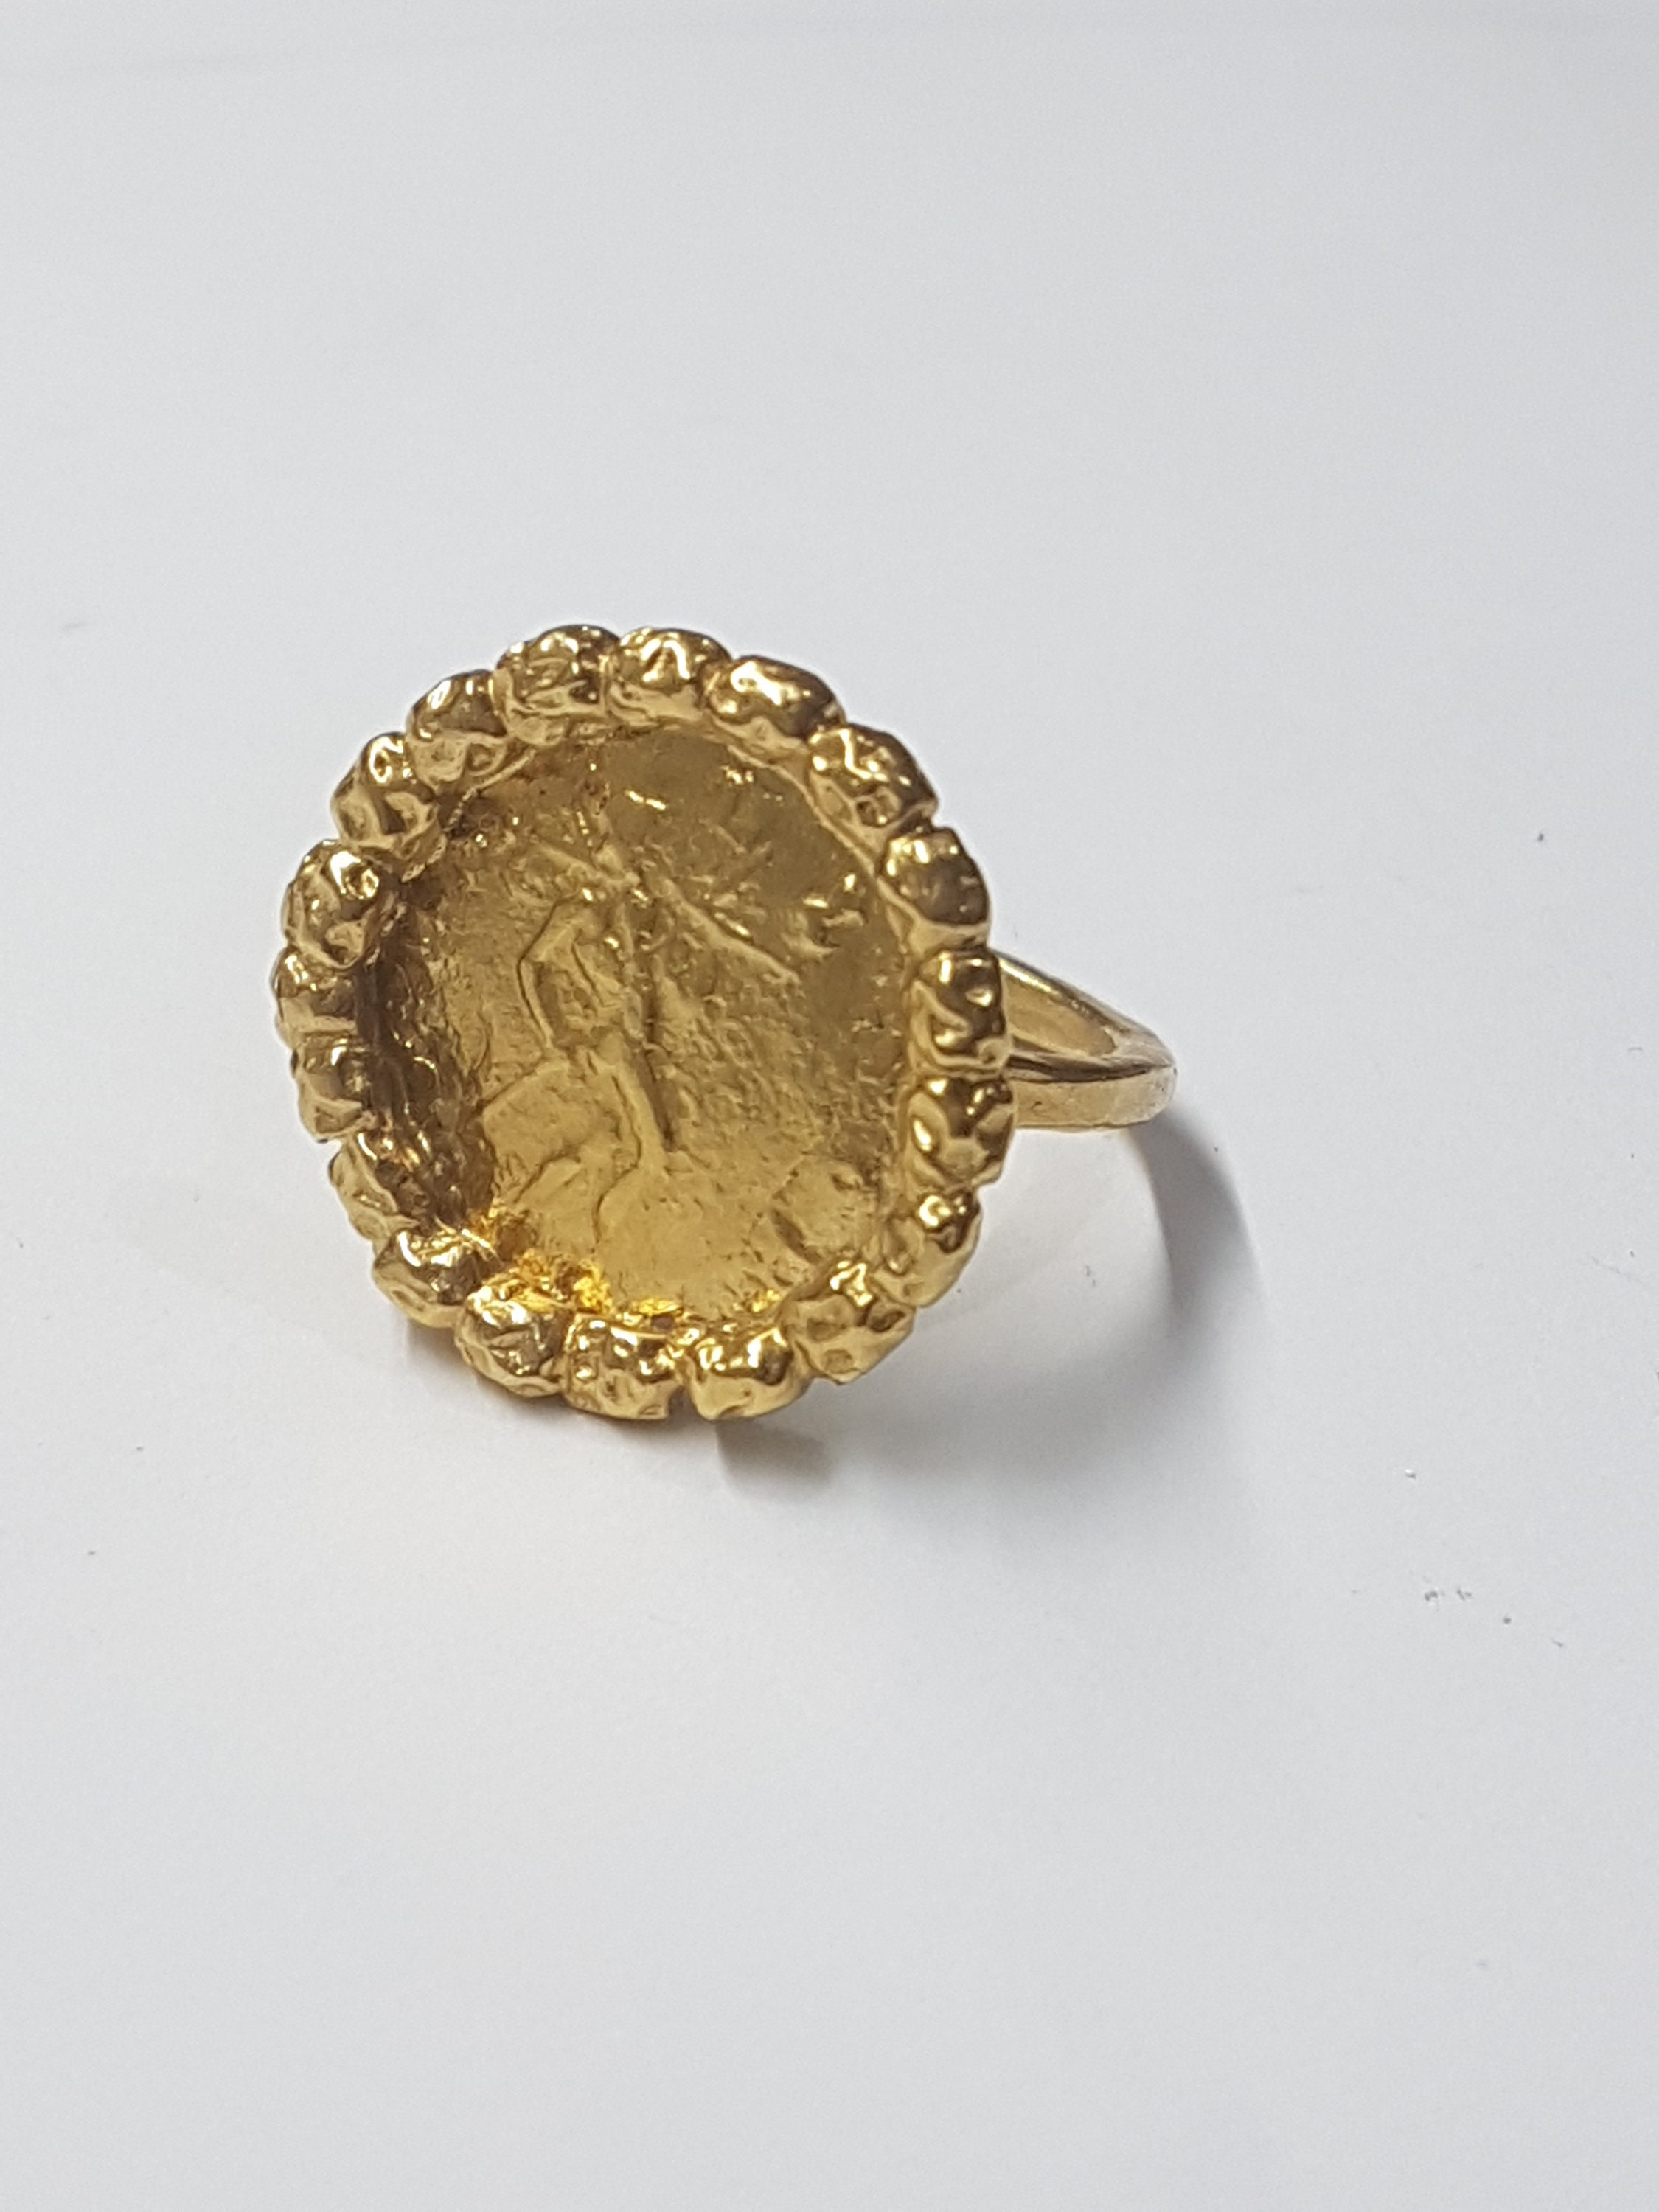 6a46d4c6f7cb8 Antique coin ring, gold coin ring, cocktail ring vintage, antique ring,  thin ring band, statement gold ring, gold ring size 5 coin ring gift